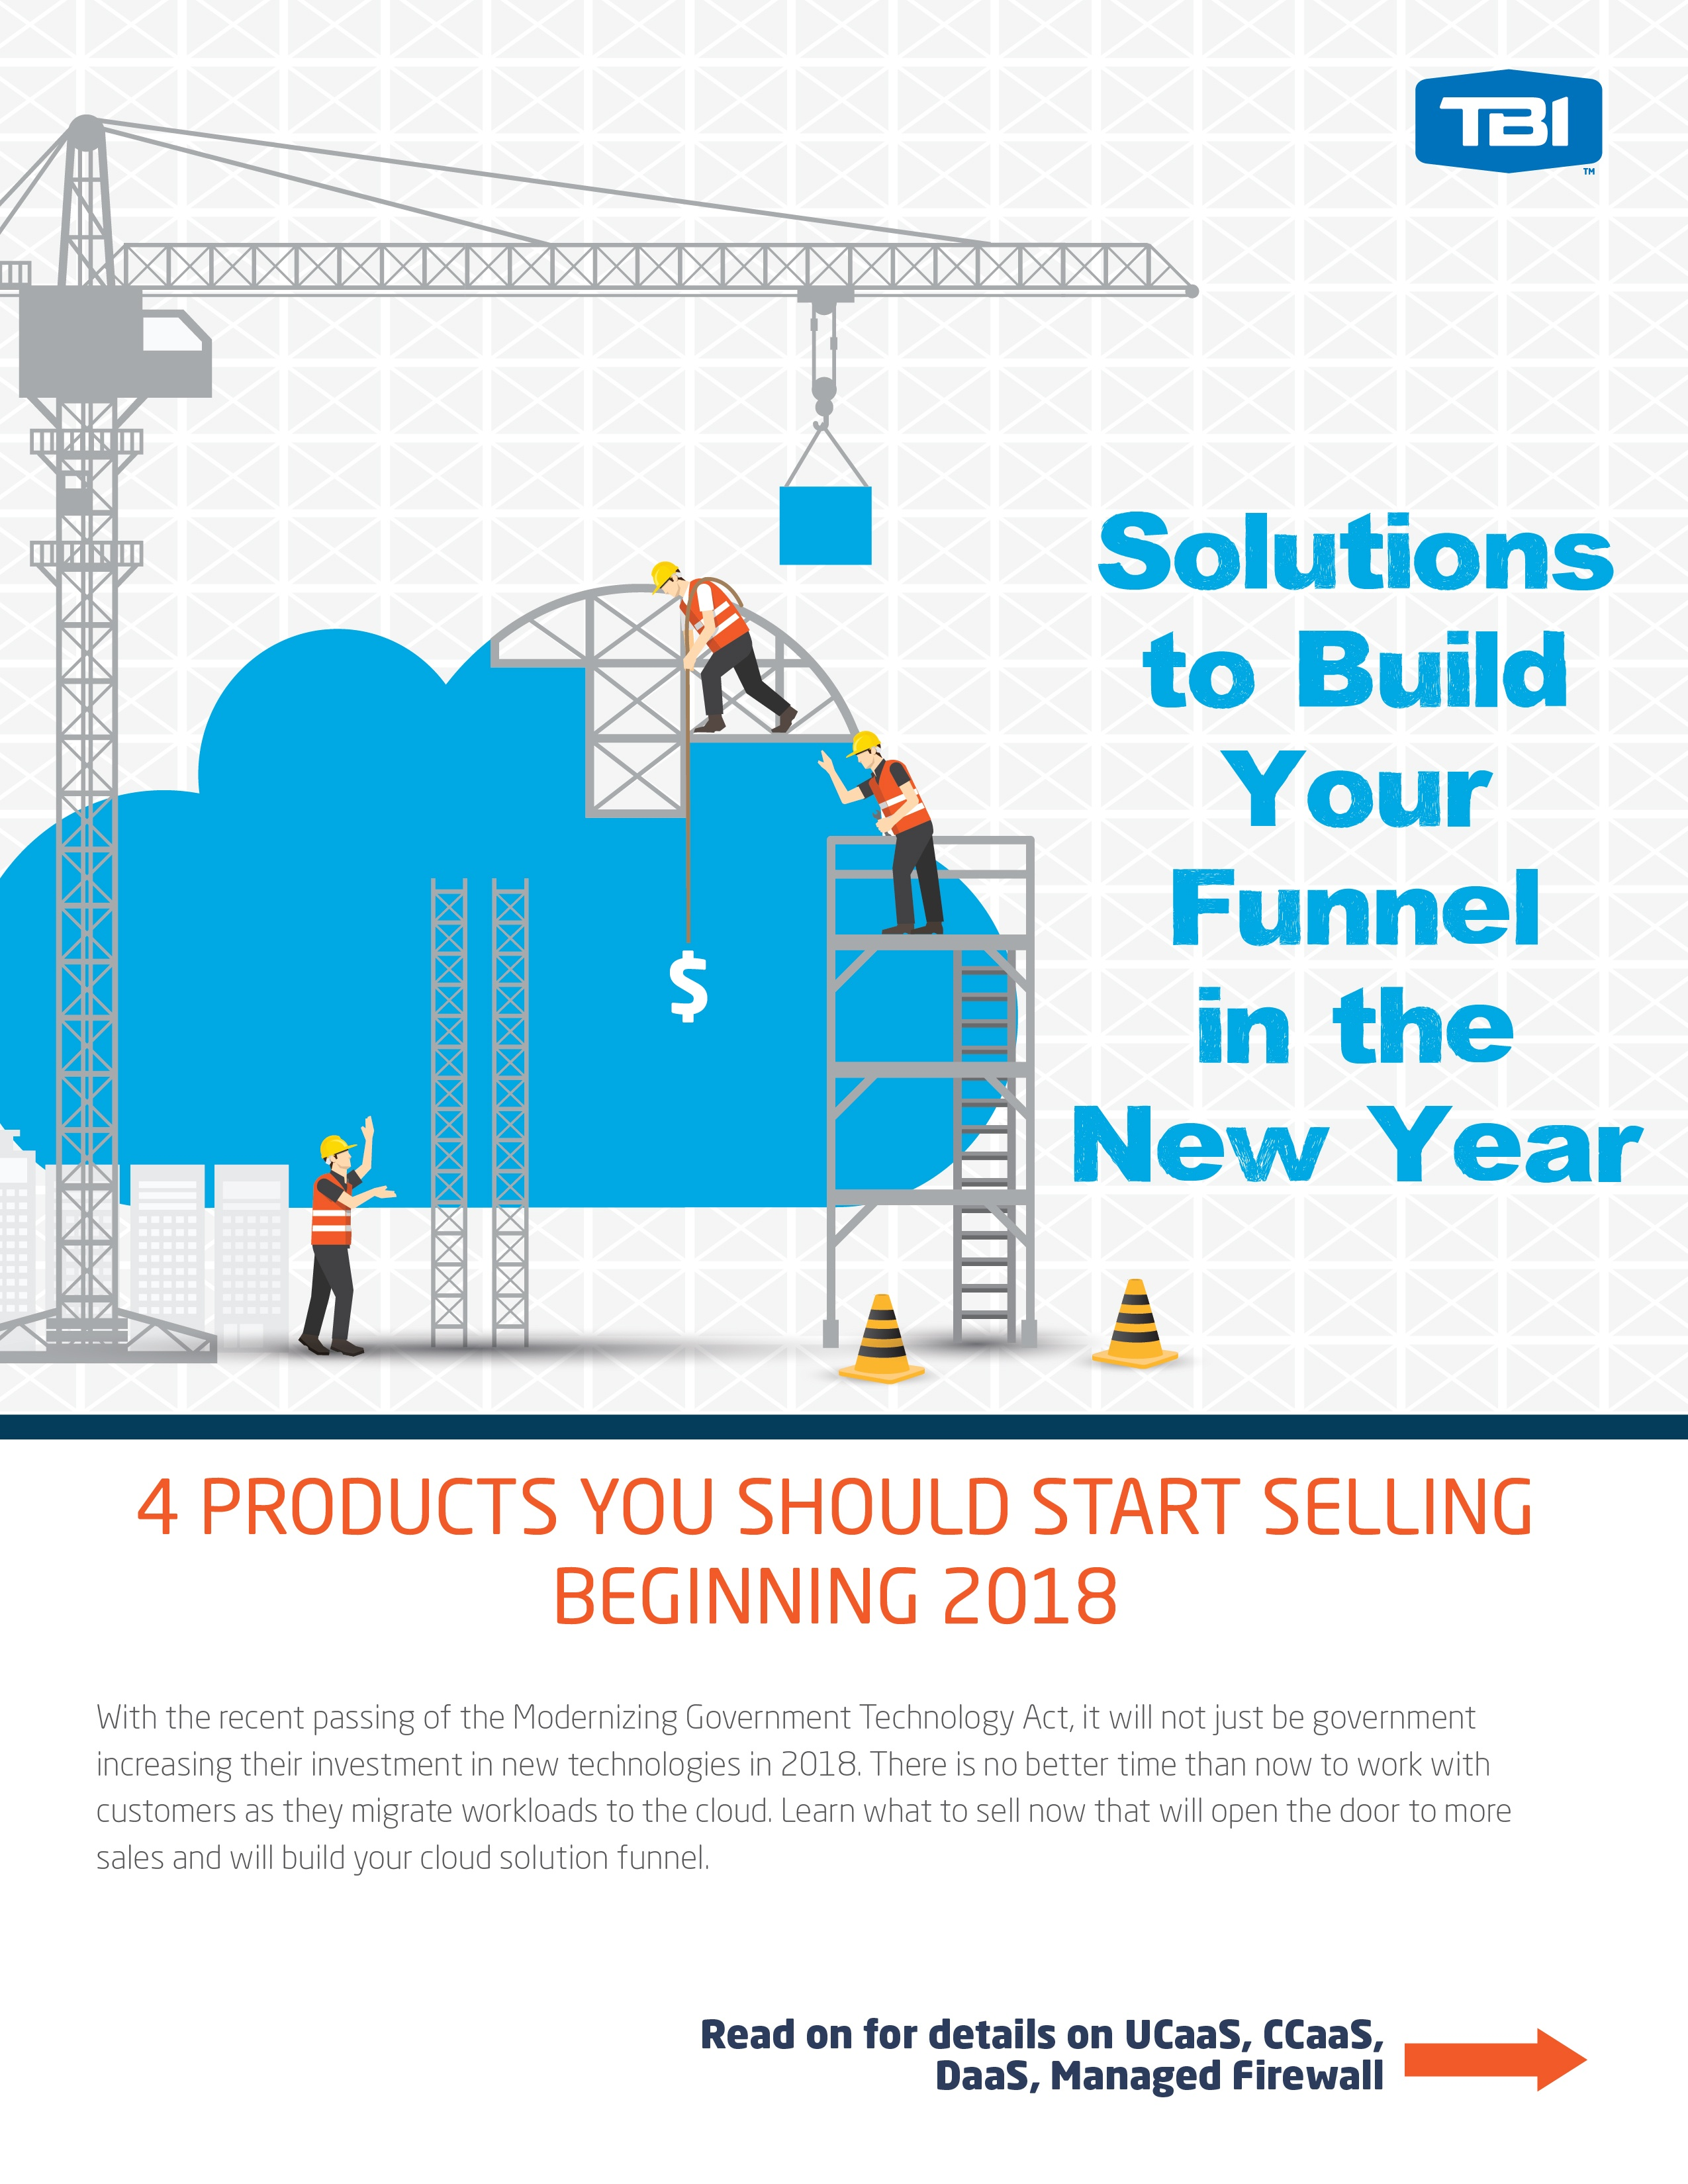 Solutions to Build Your 2018 Funnel_Edit-01.jpg